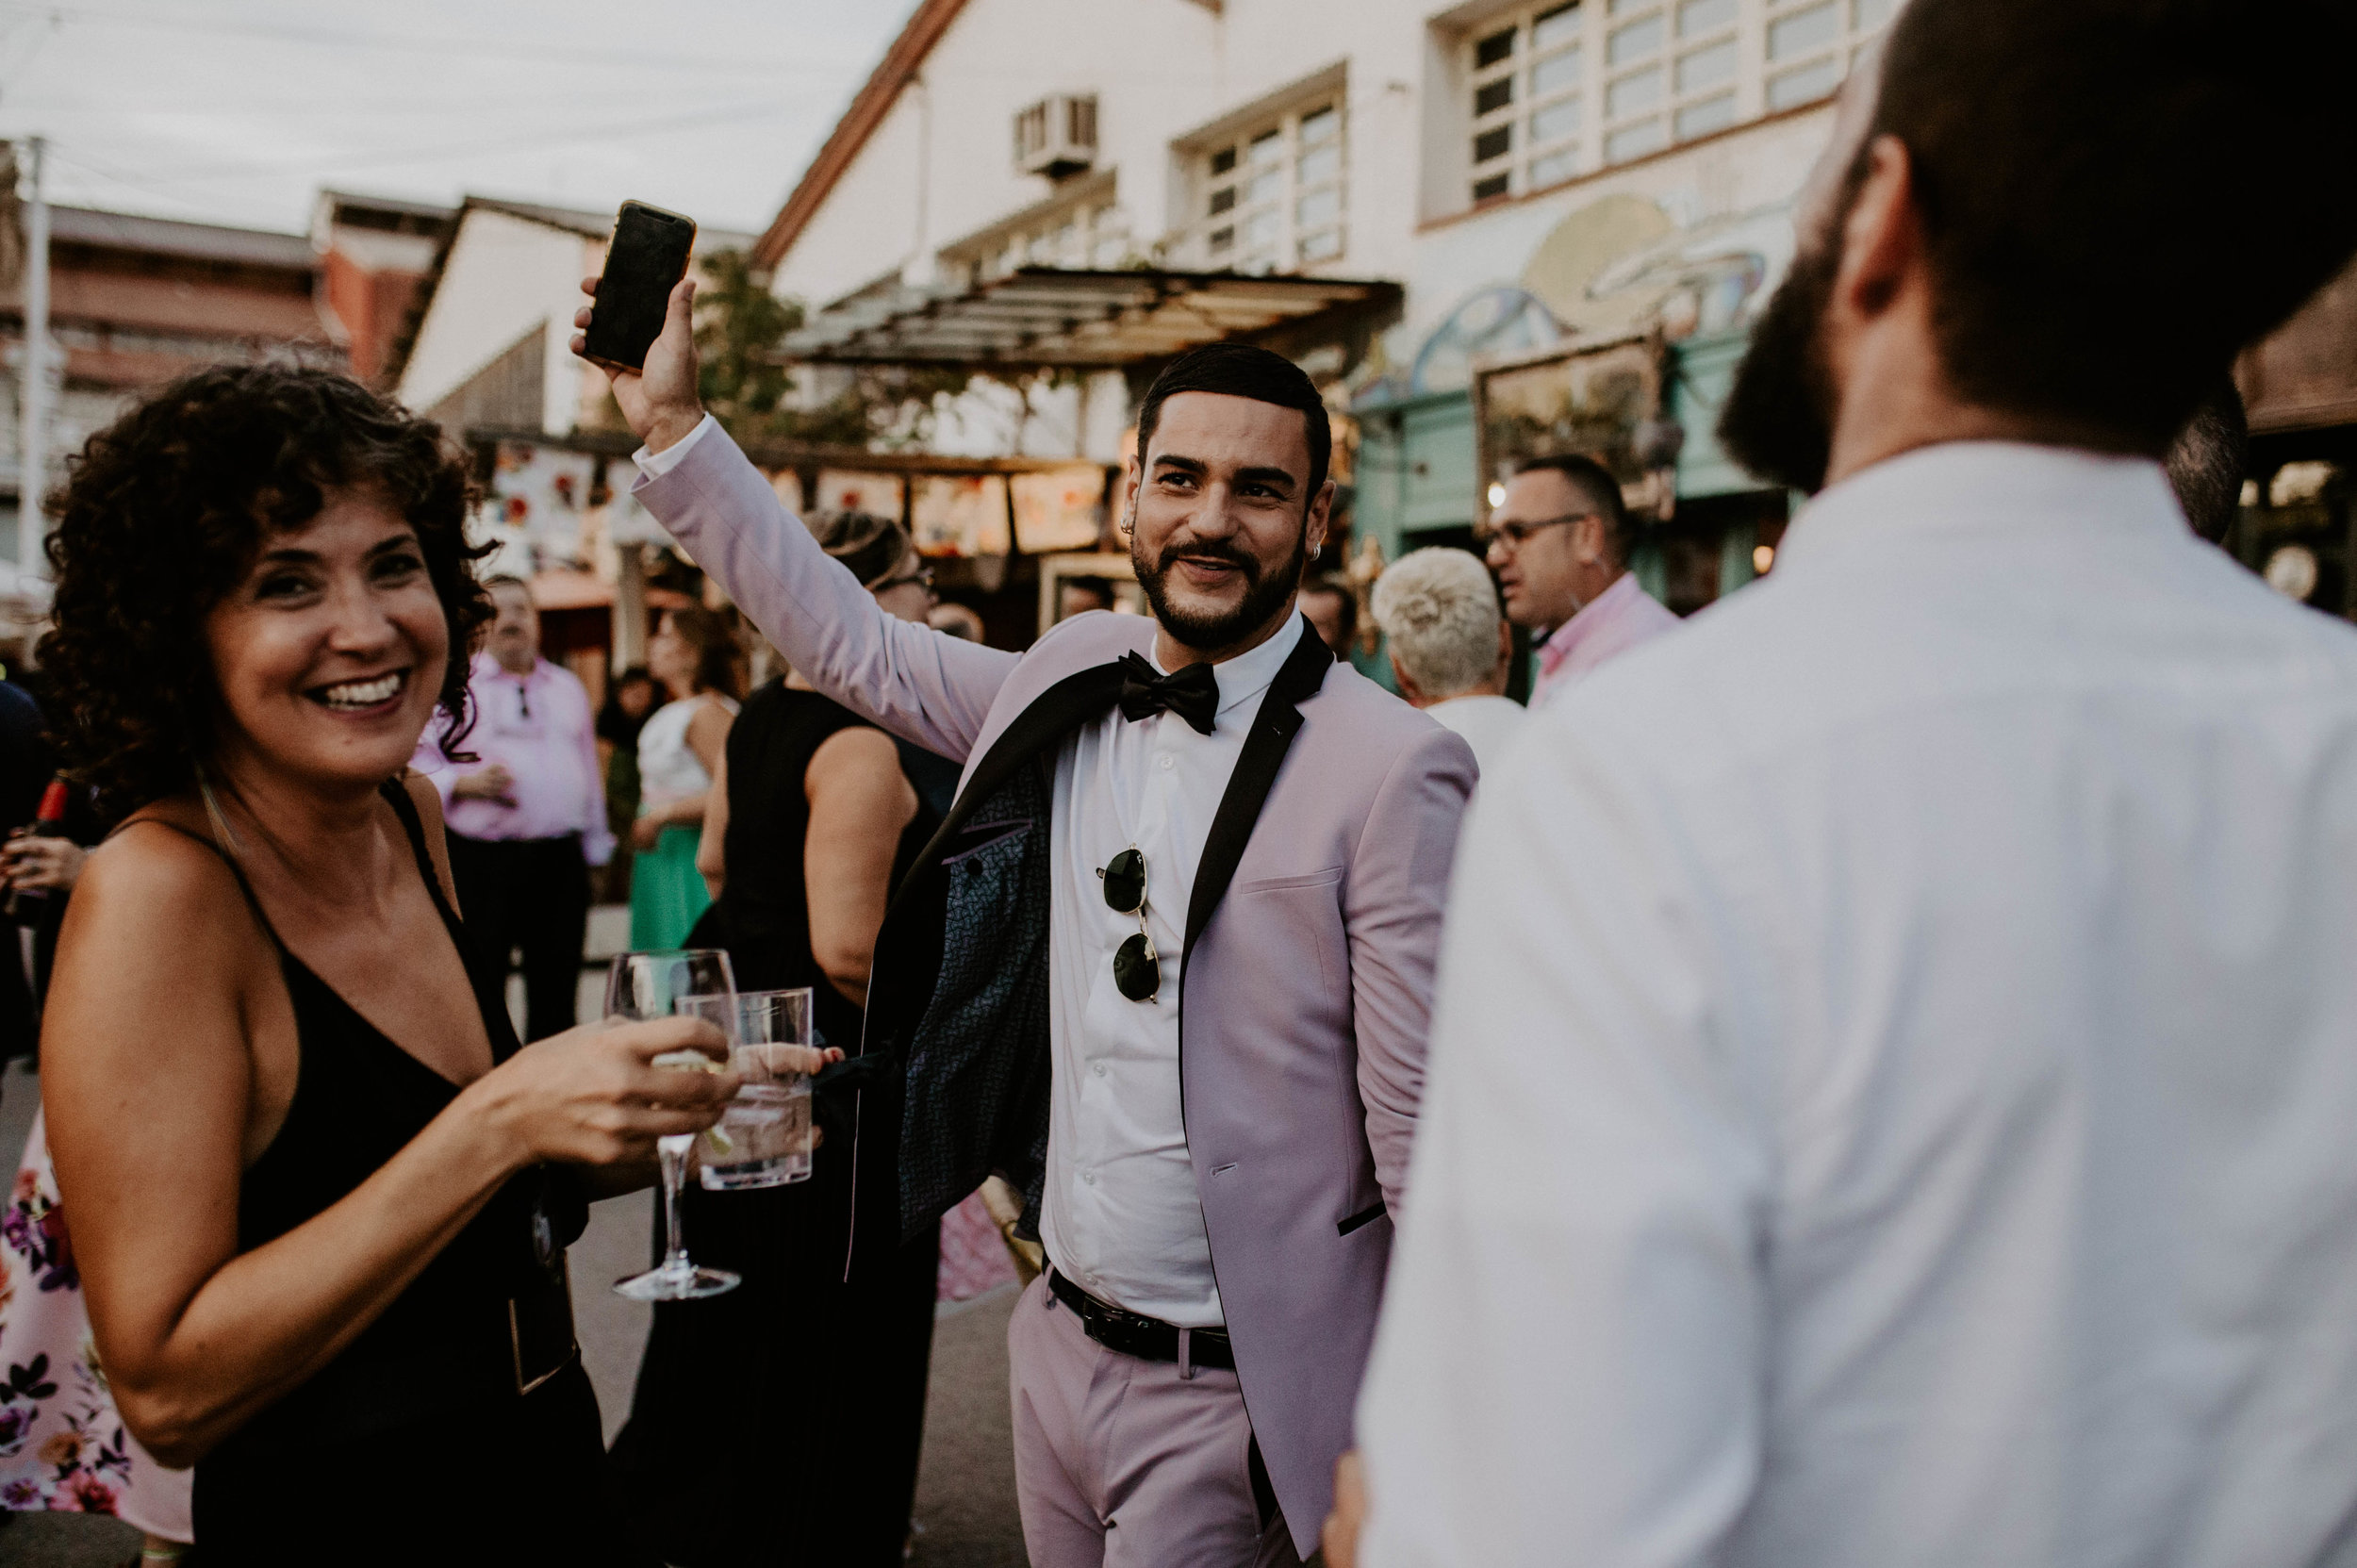 thenortherngirlphotography_bodasindustriales_bodasdiferentes_weddingphotographer_spanishphotographer_spanisgweddingphotographer_happyendings_mercantic_elsiglomercantic_antichrist_love_neon_weddingtattoo_CYNTHIAMANOLO-564.jpg